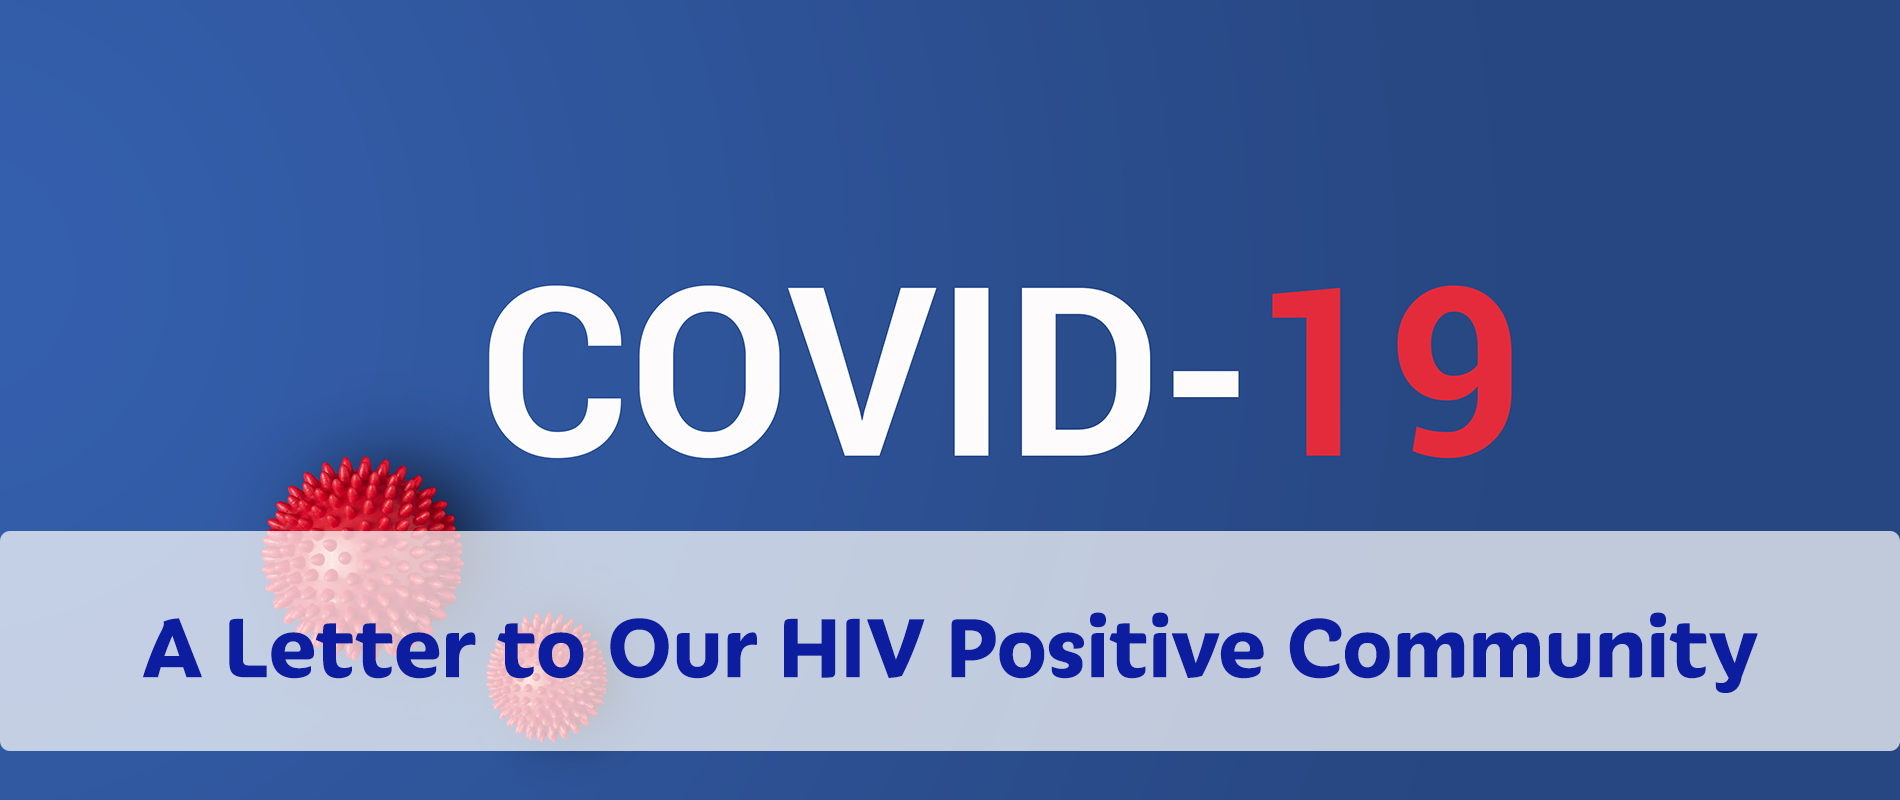 A Letter to Our HIV Positive Community